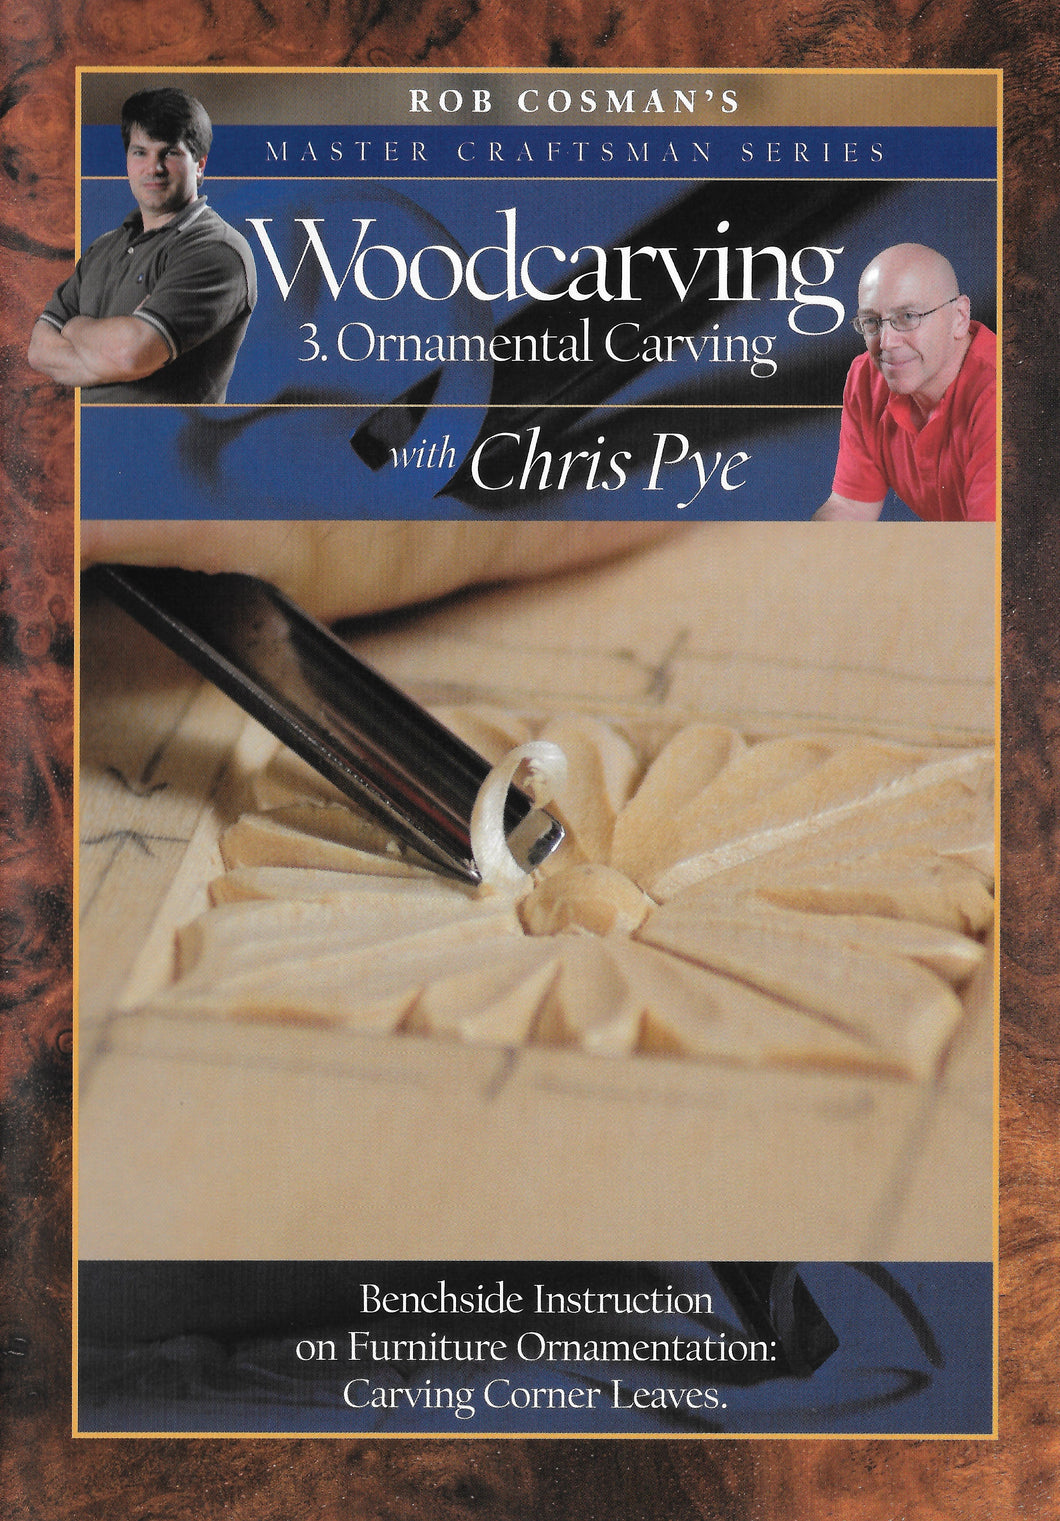 Woodcarving #3, Ornamental Carving